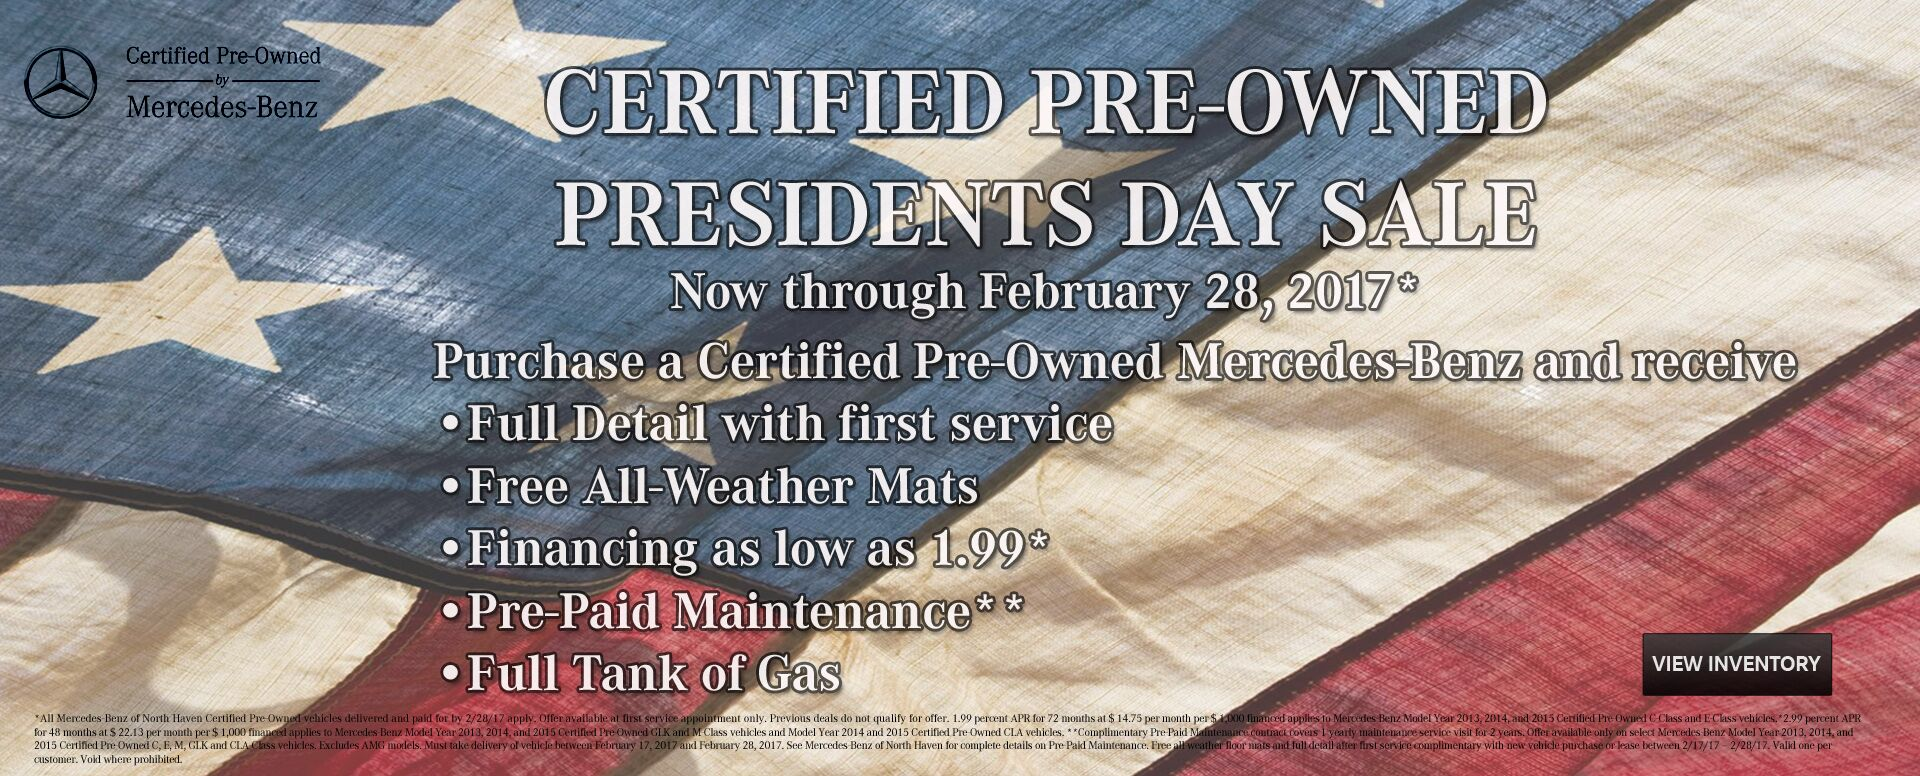 2017 February CPO Pres Day Sale